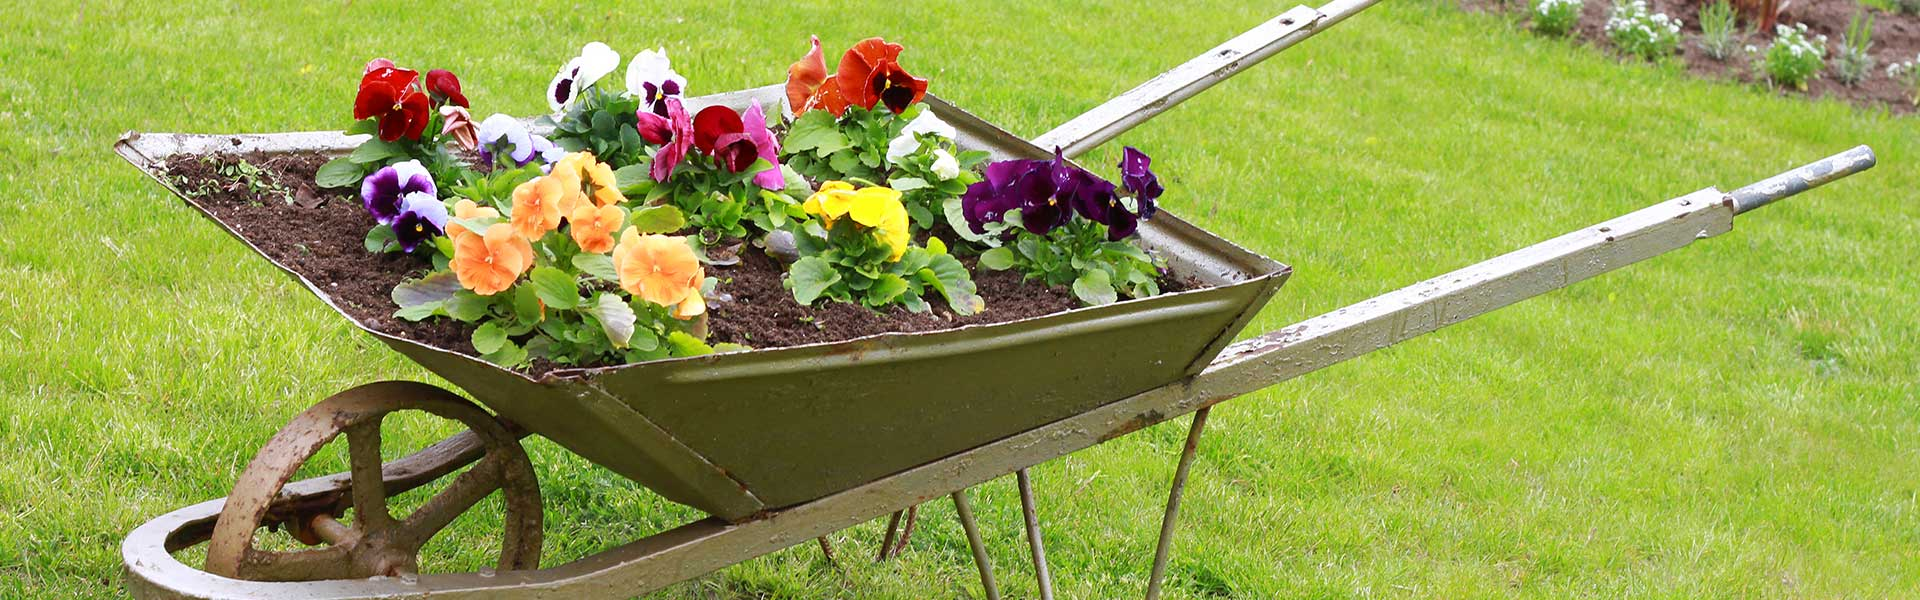 We are here to help you grow the best-looking garden ever!!